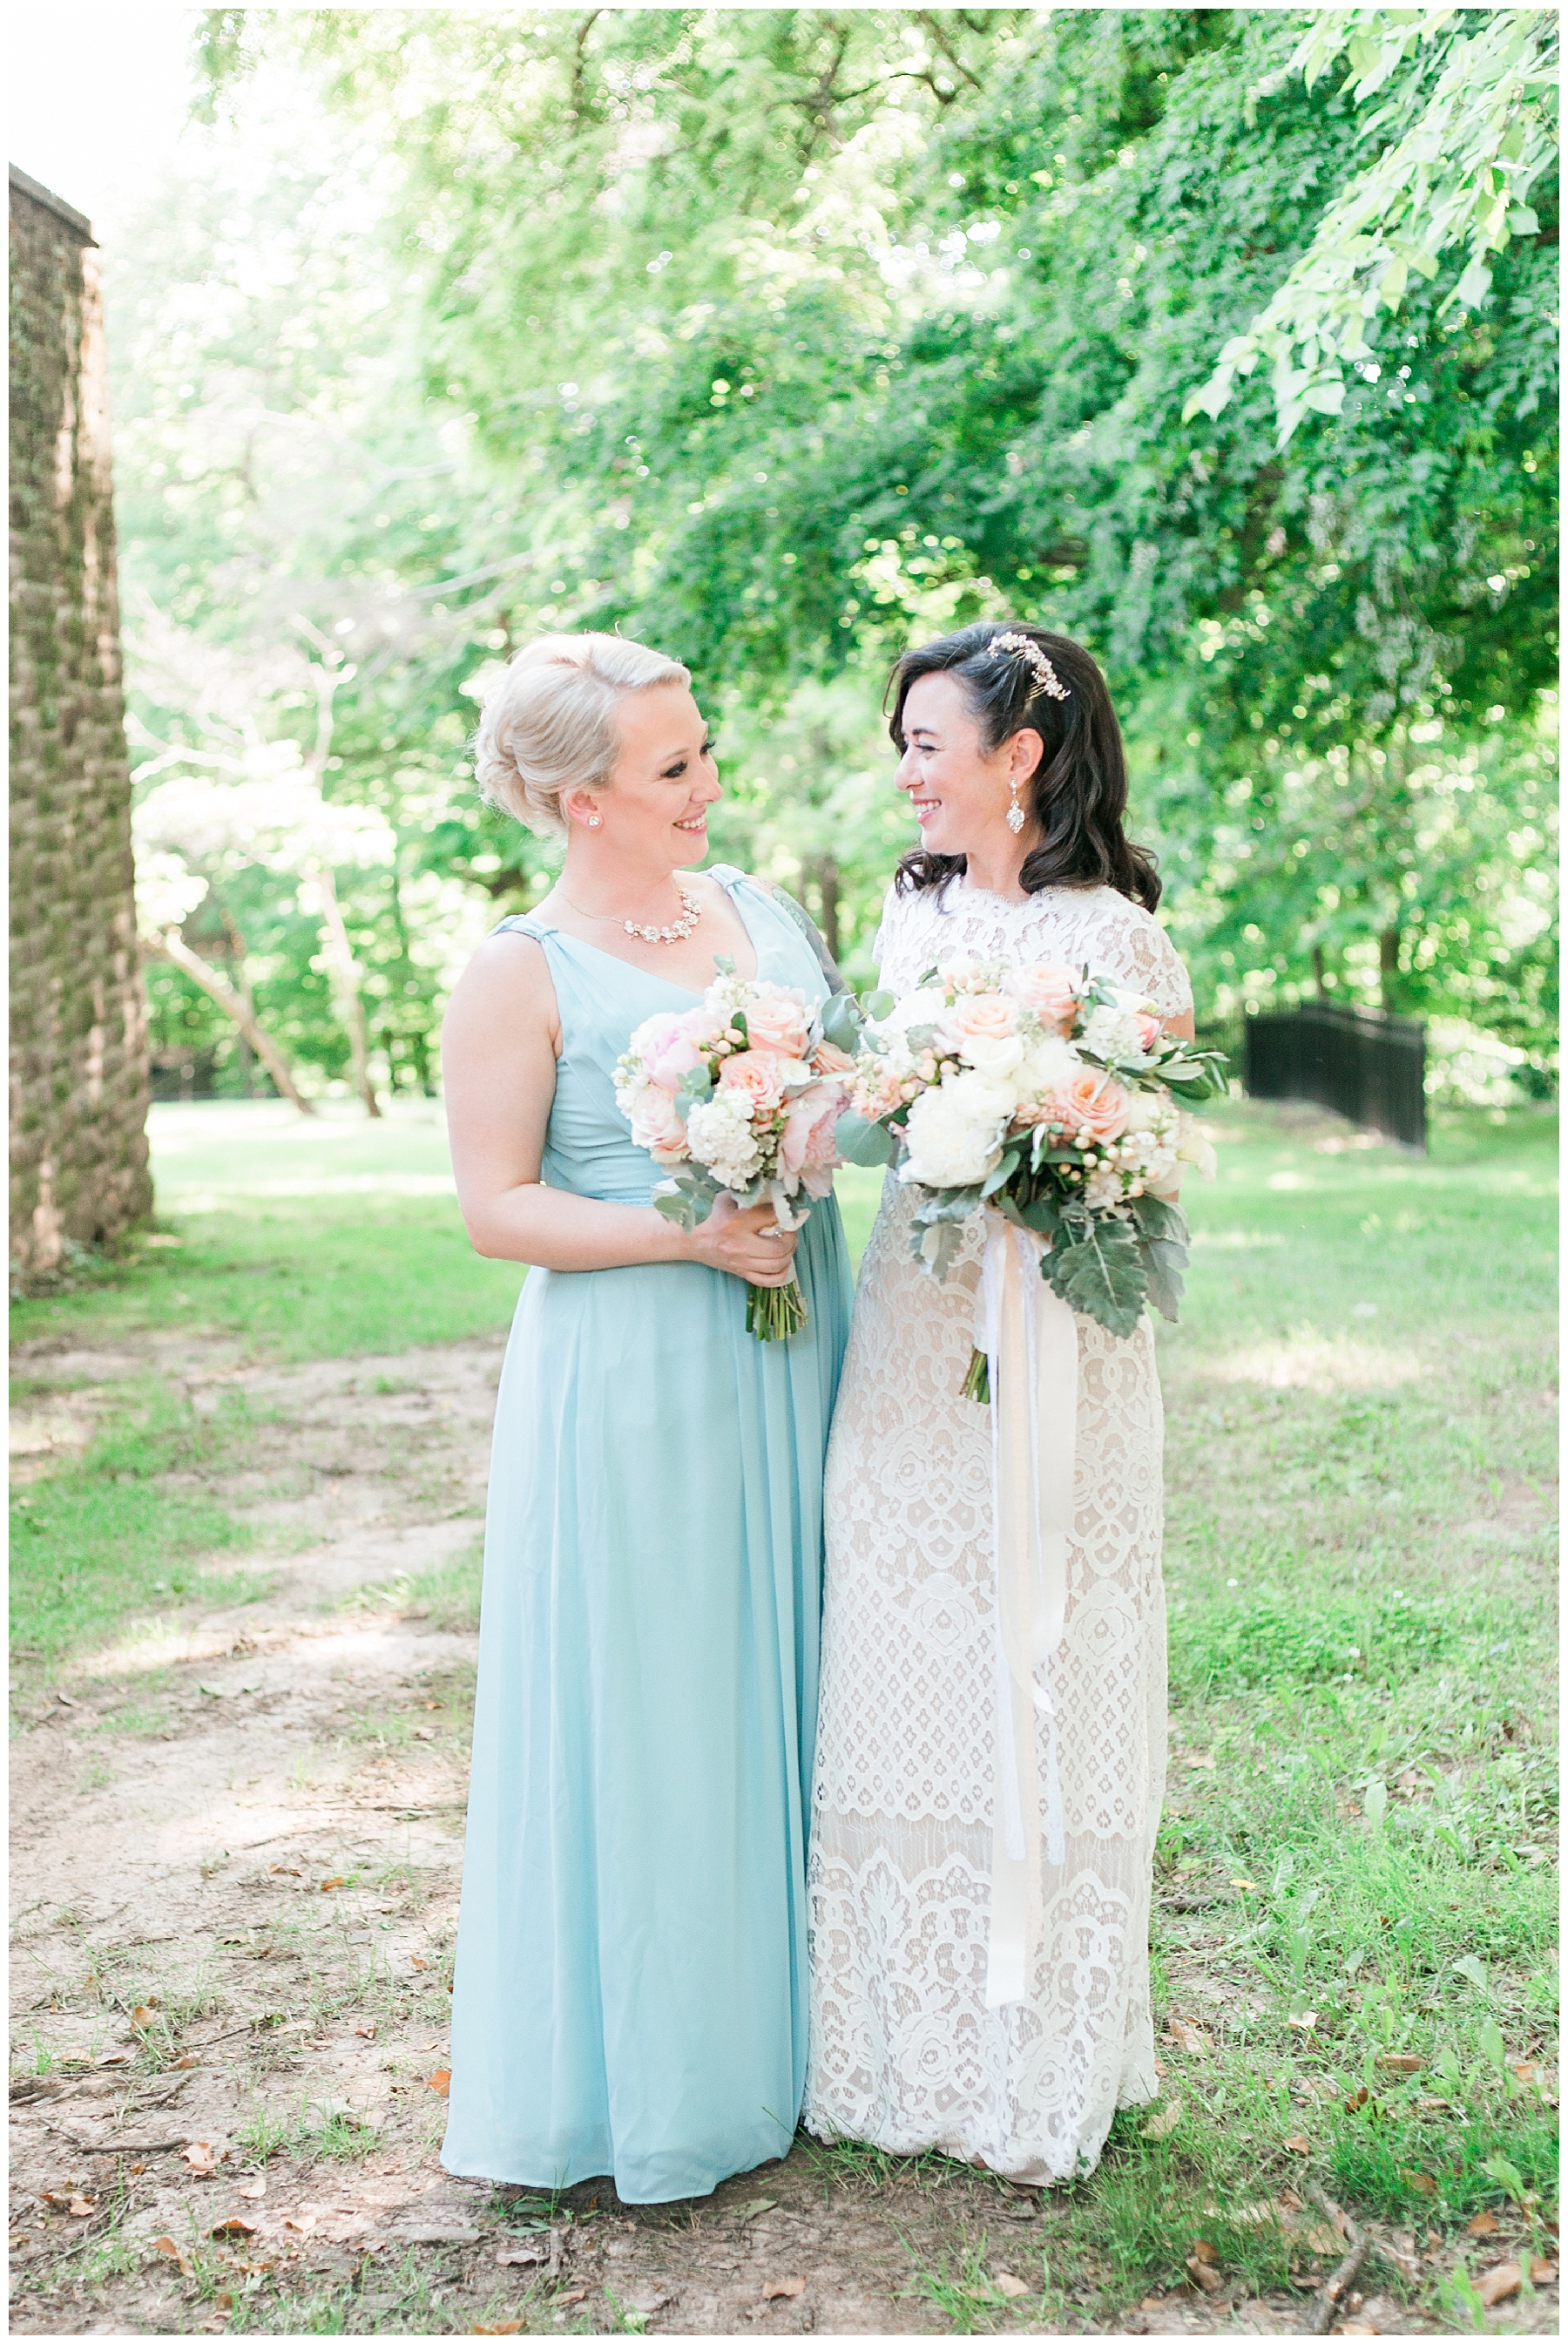 Tyler Gardens light and airy lush green wedding photographer